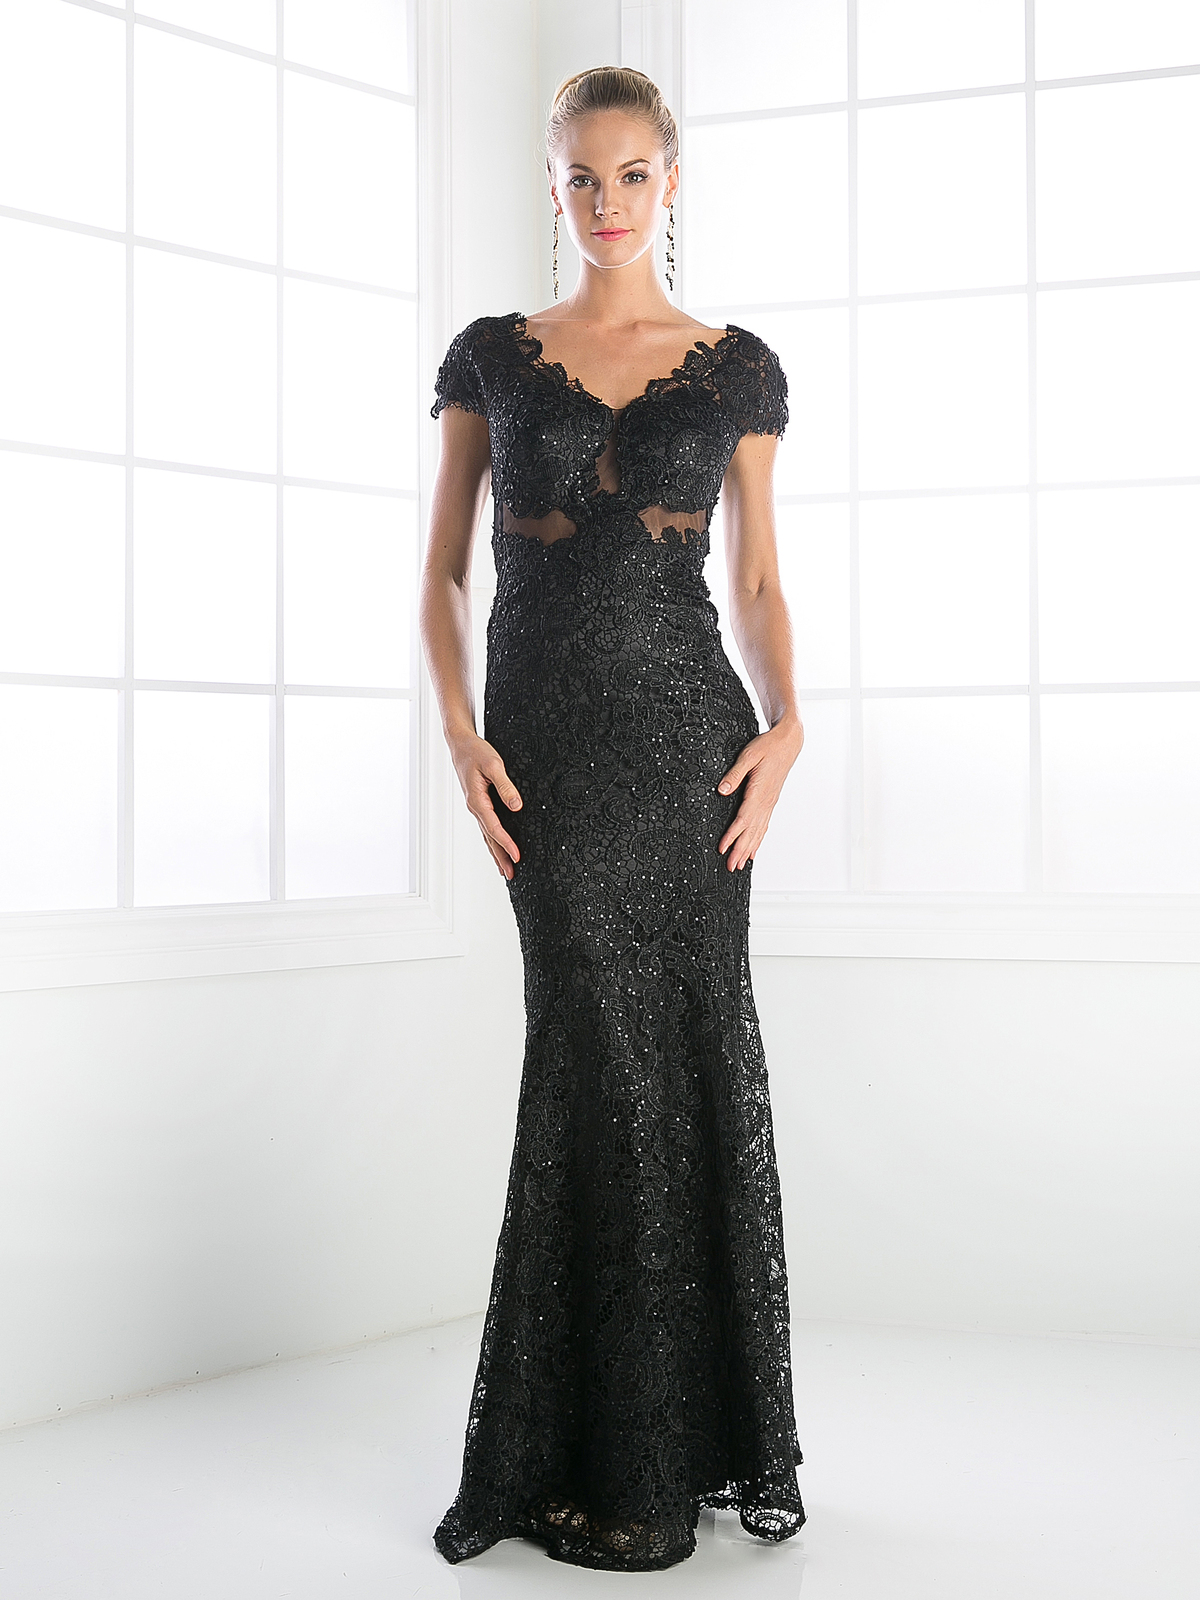 V-Neck Cap Sleeveless Mother of the bride Evening Dress | Sung ...